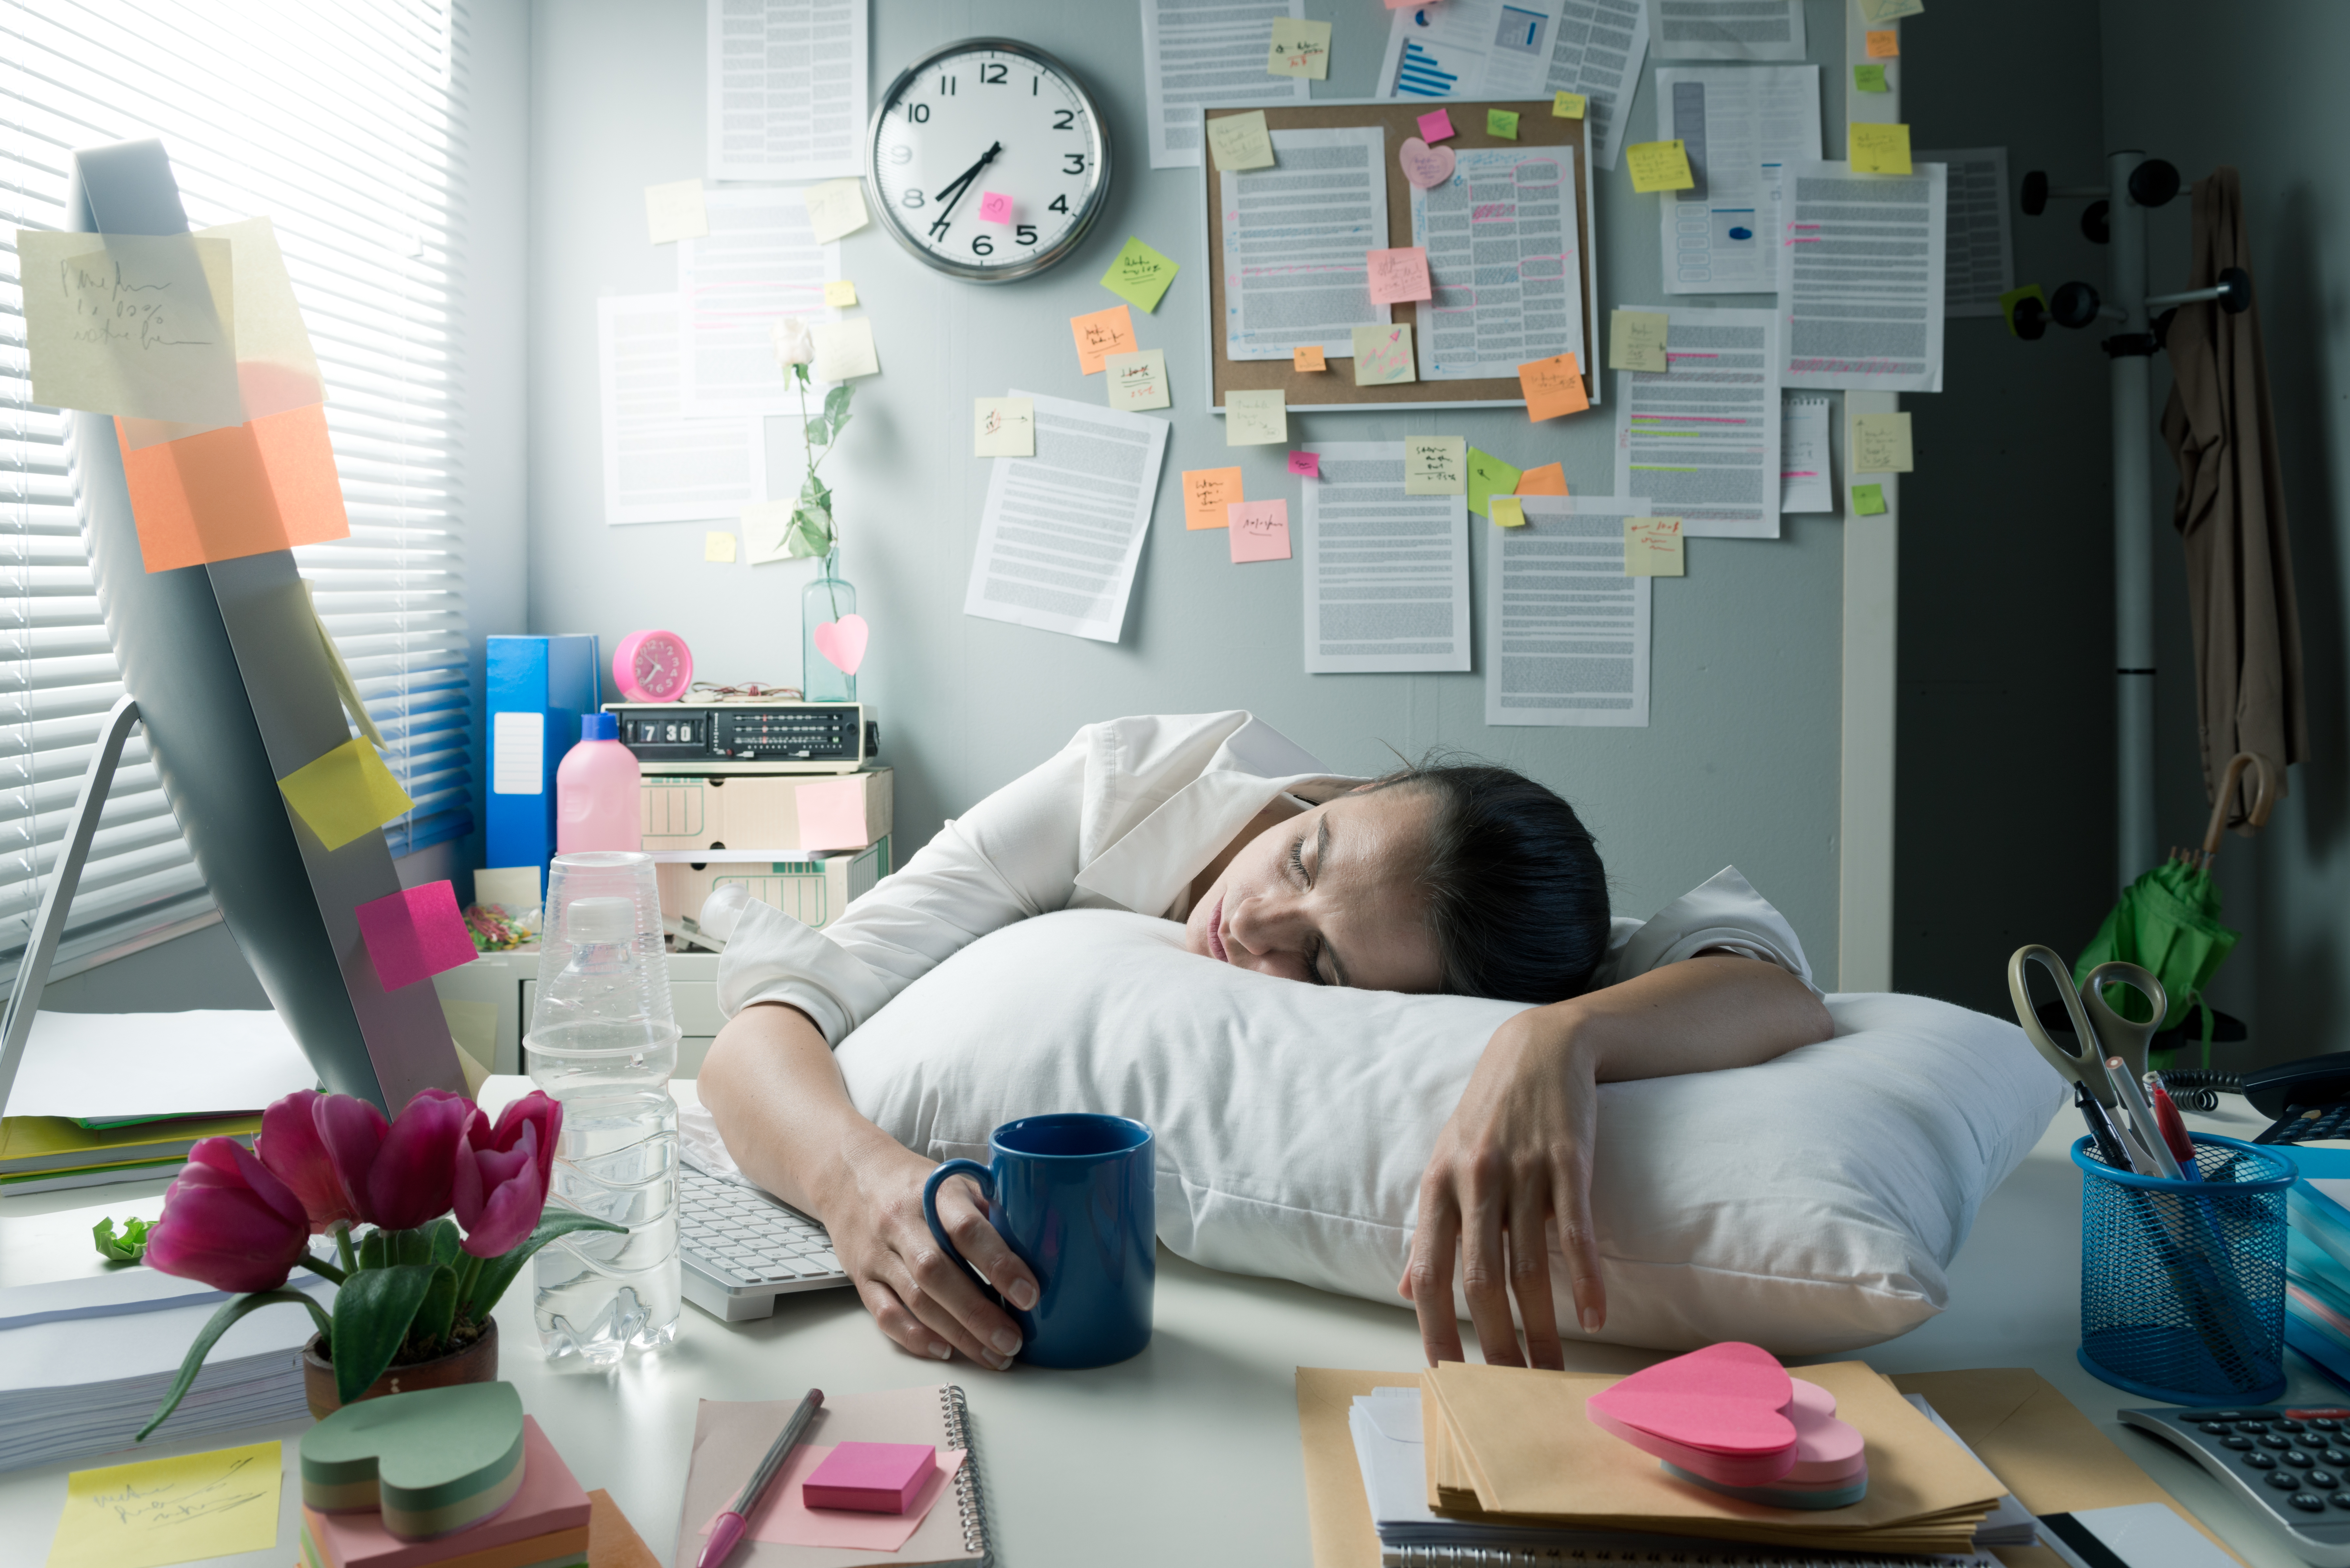 HOW TO ESCAPE BURNOUT WORKING FROM HOME